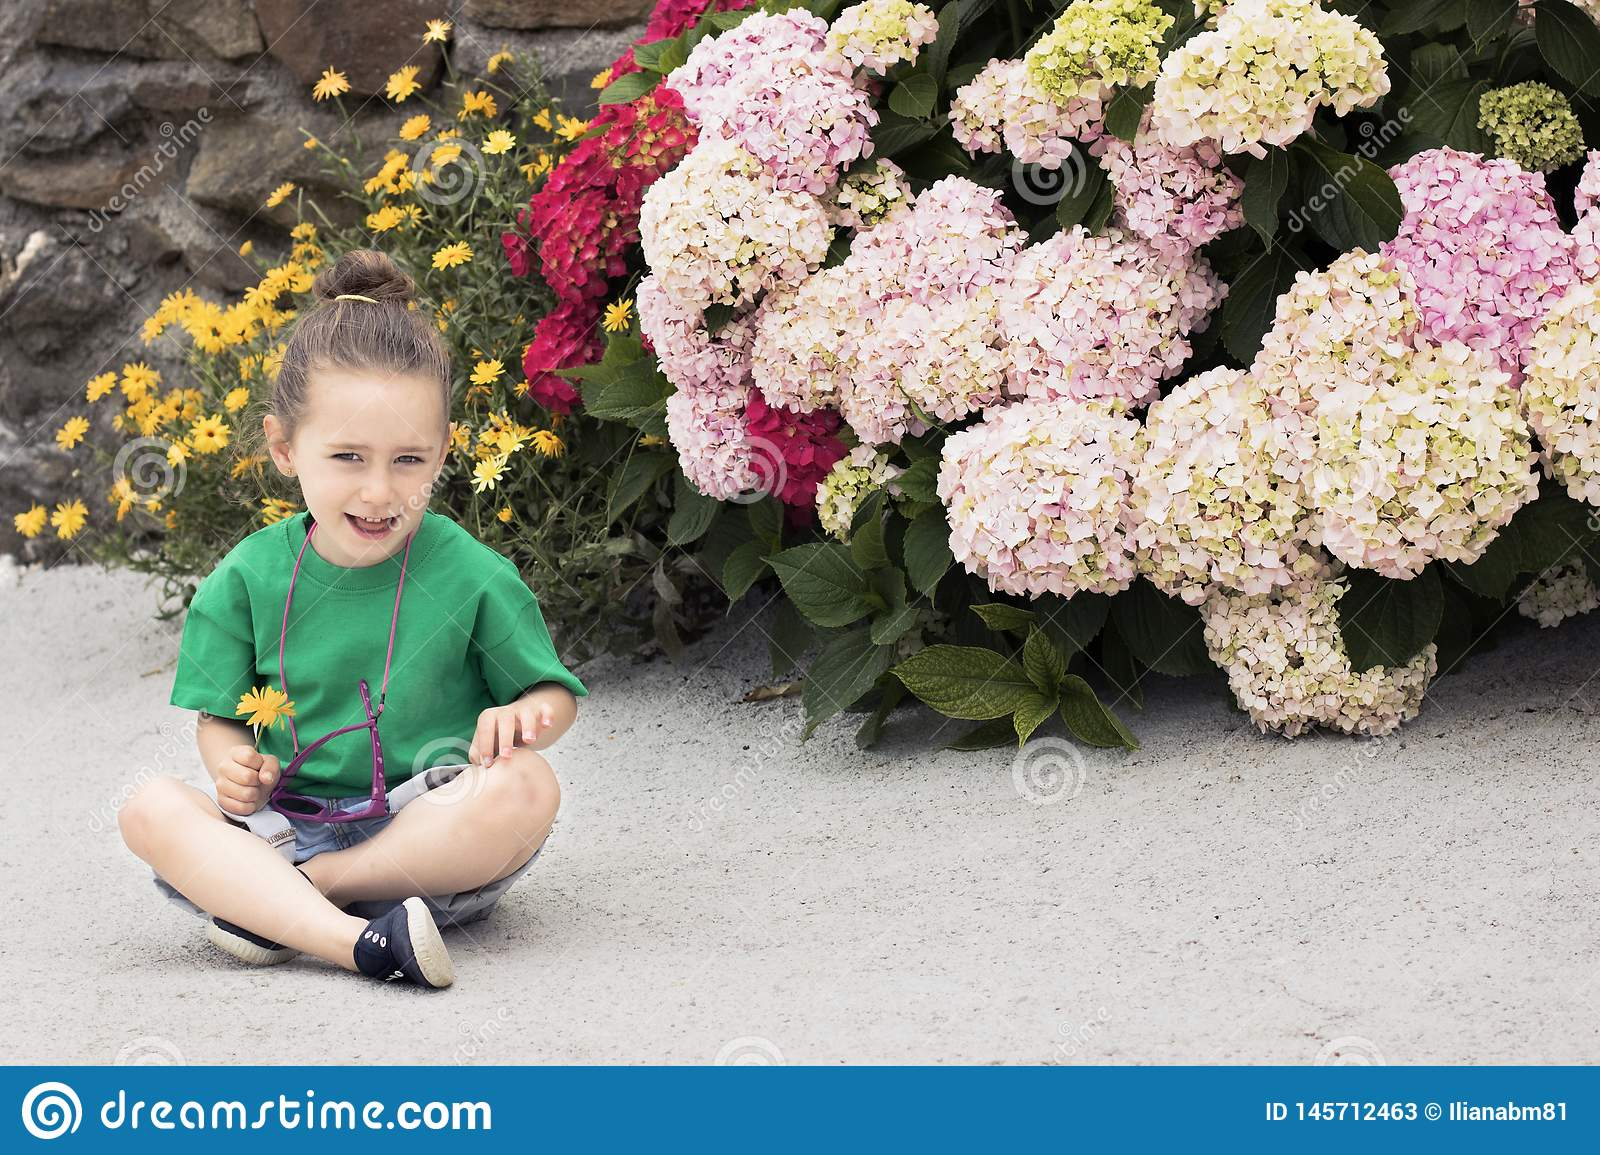 A four-year-old girl holds a marigold flower